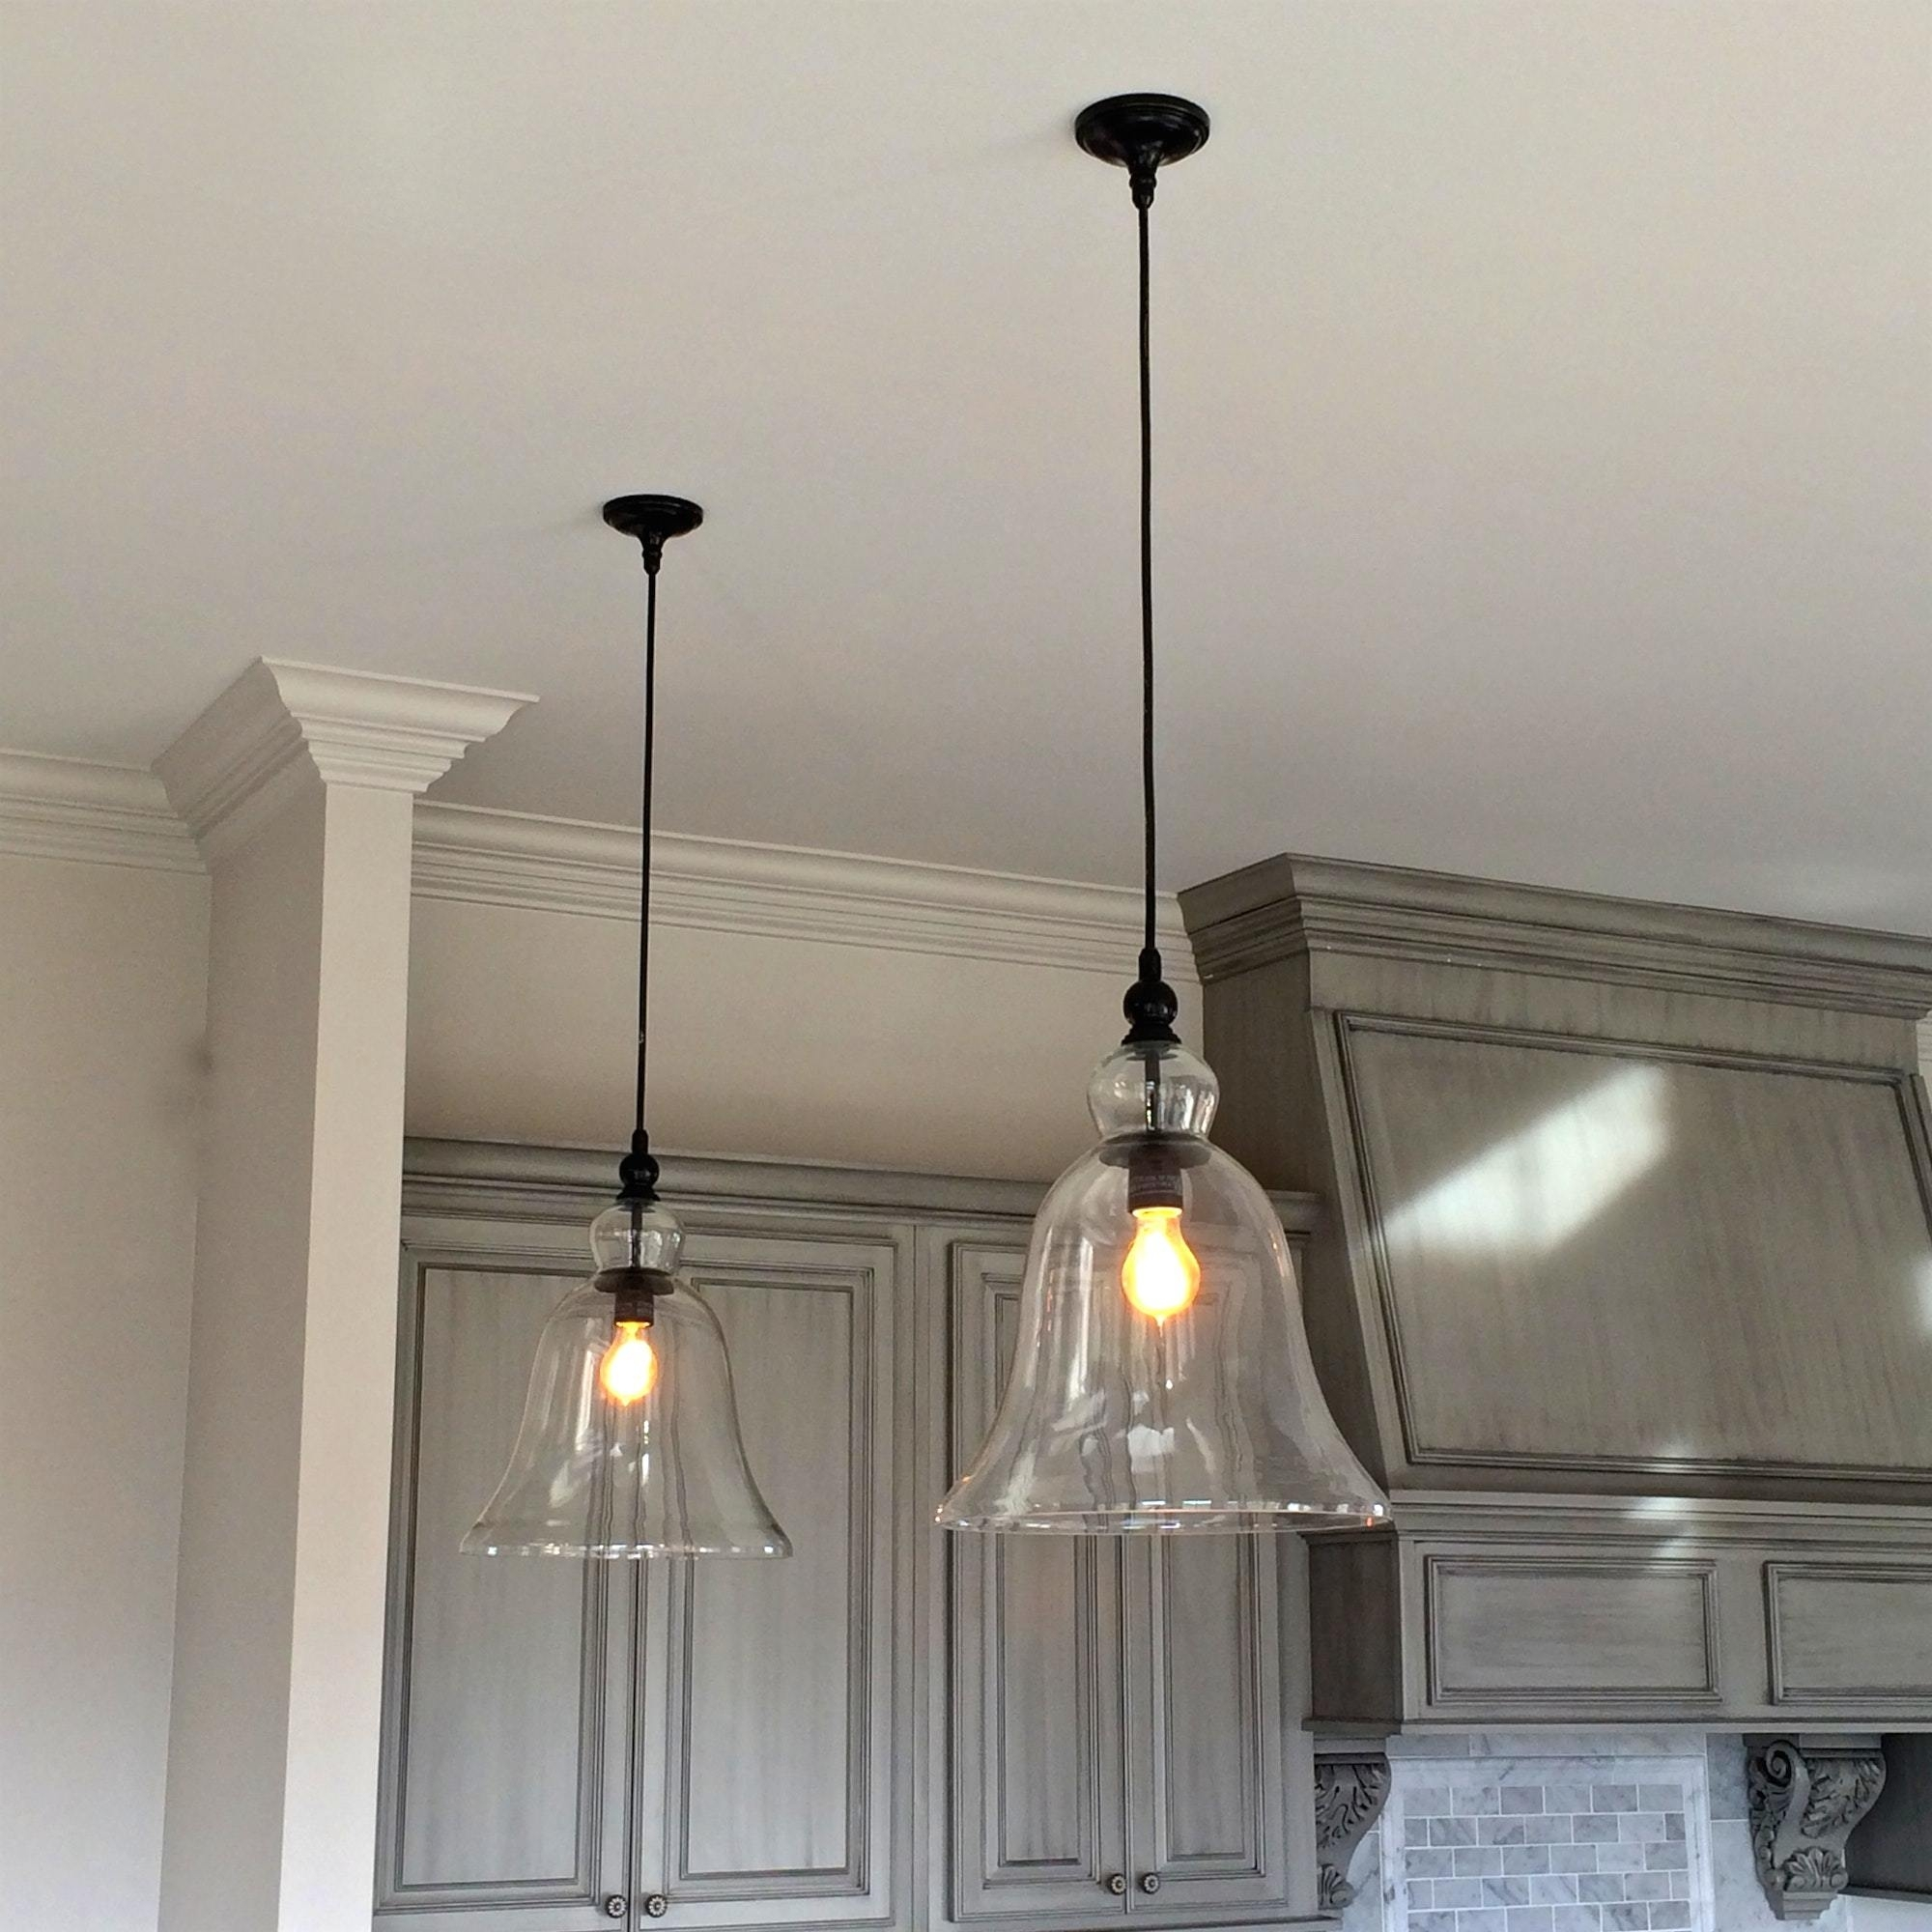 68 Creative Preferable Light Kitchen Pendant Glass Hanging Lights Uk With Melbourne Outdoor Ceiling Lights (#1 of 15)